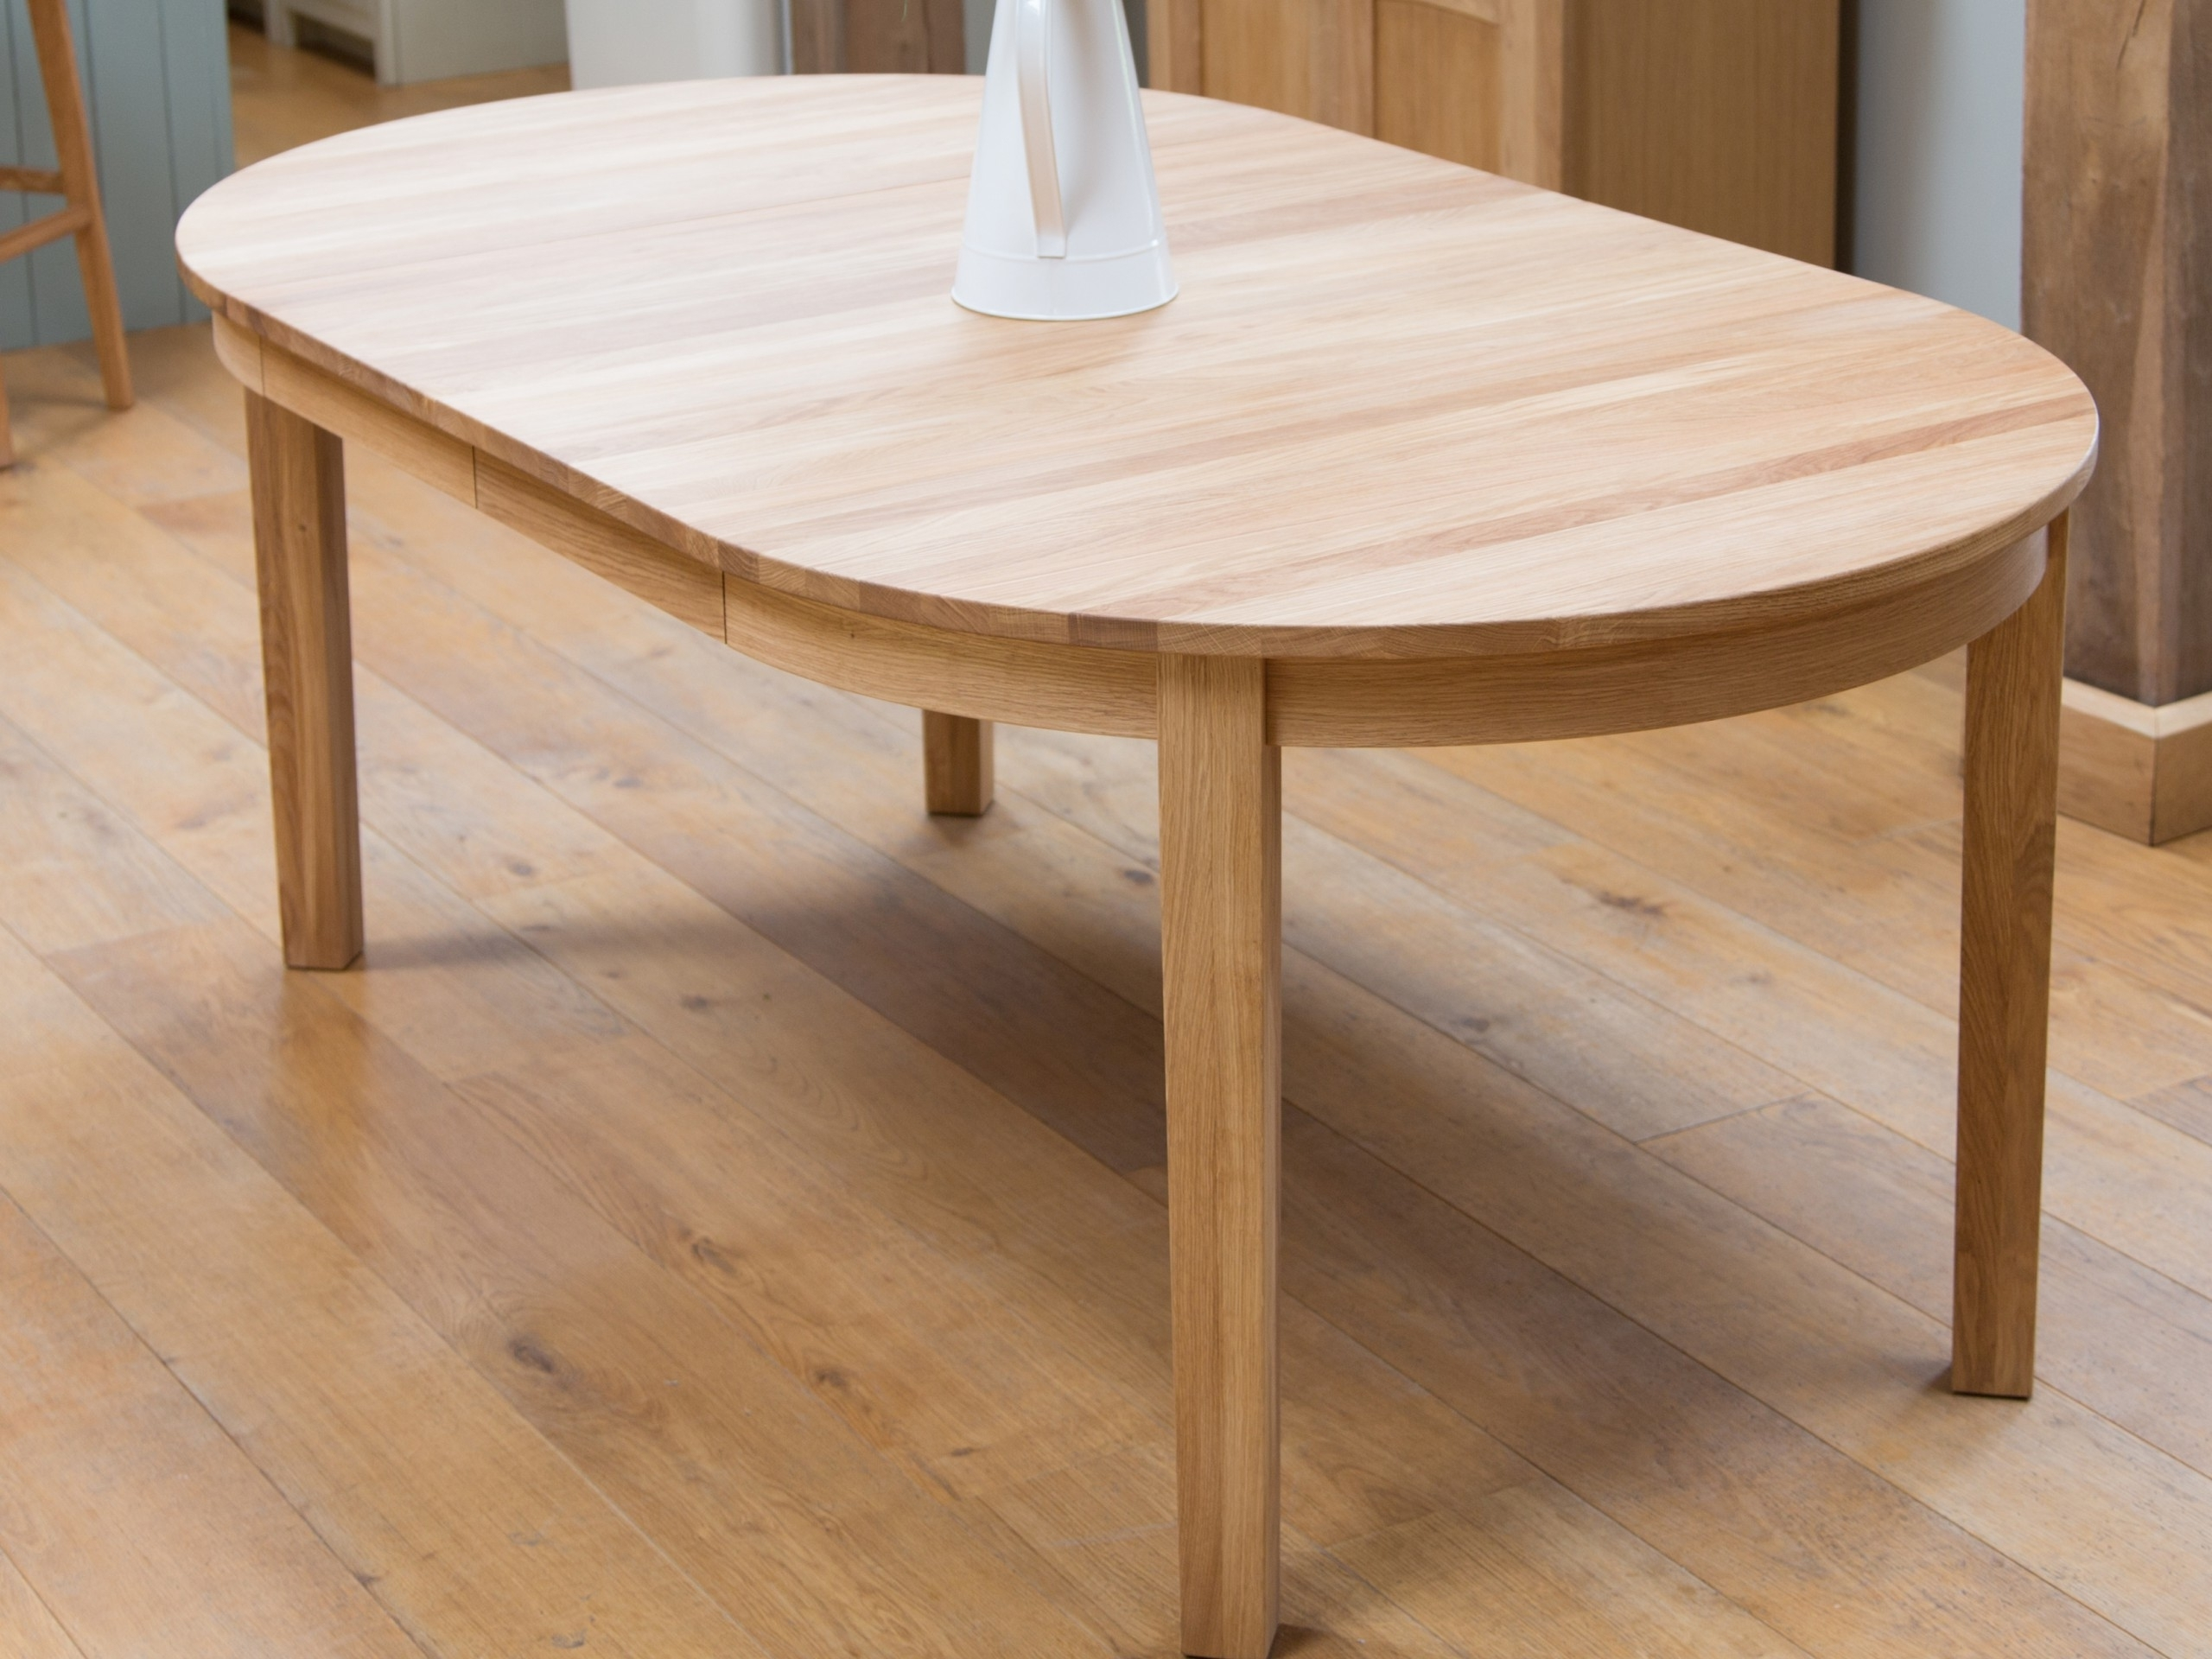 Newest Round Extendable Dining Table Design (Gallery 18 of 25)